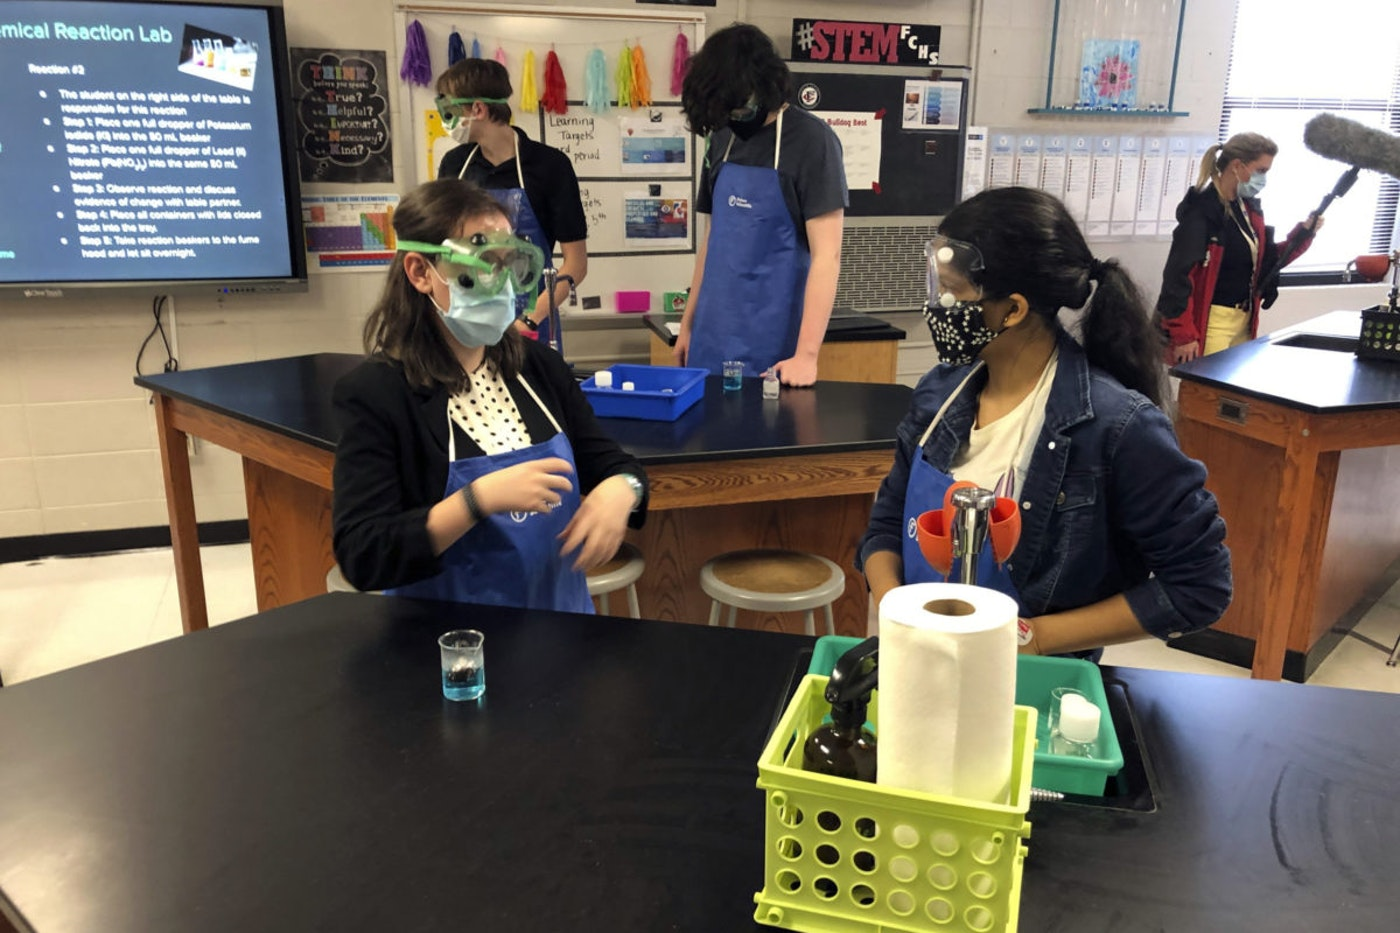 Schools across the country are bracing for steep budget cuts as the coronavirus pandemic continues (AP Photo/Jeff Amy).